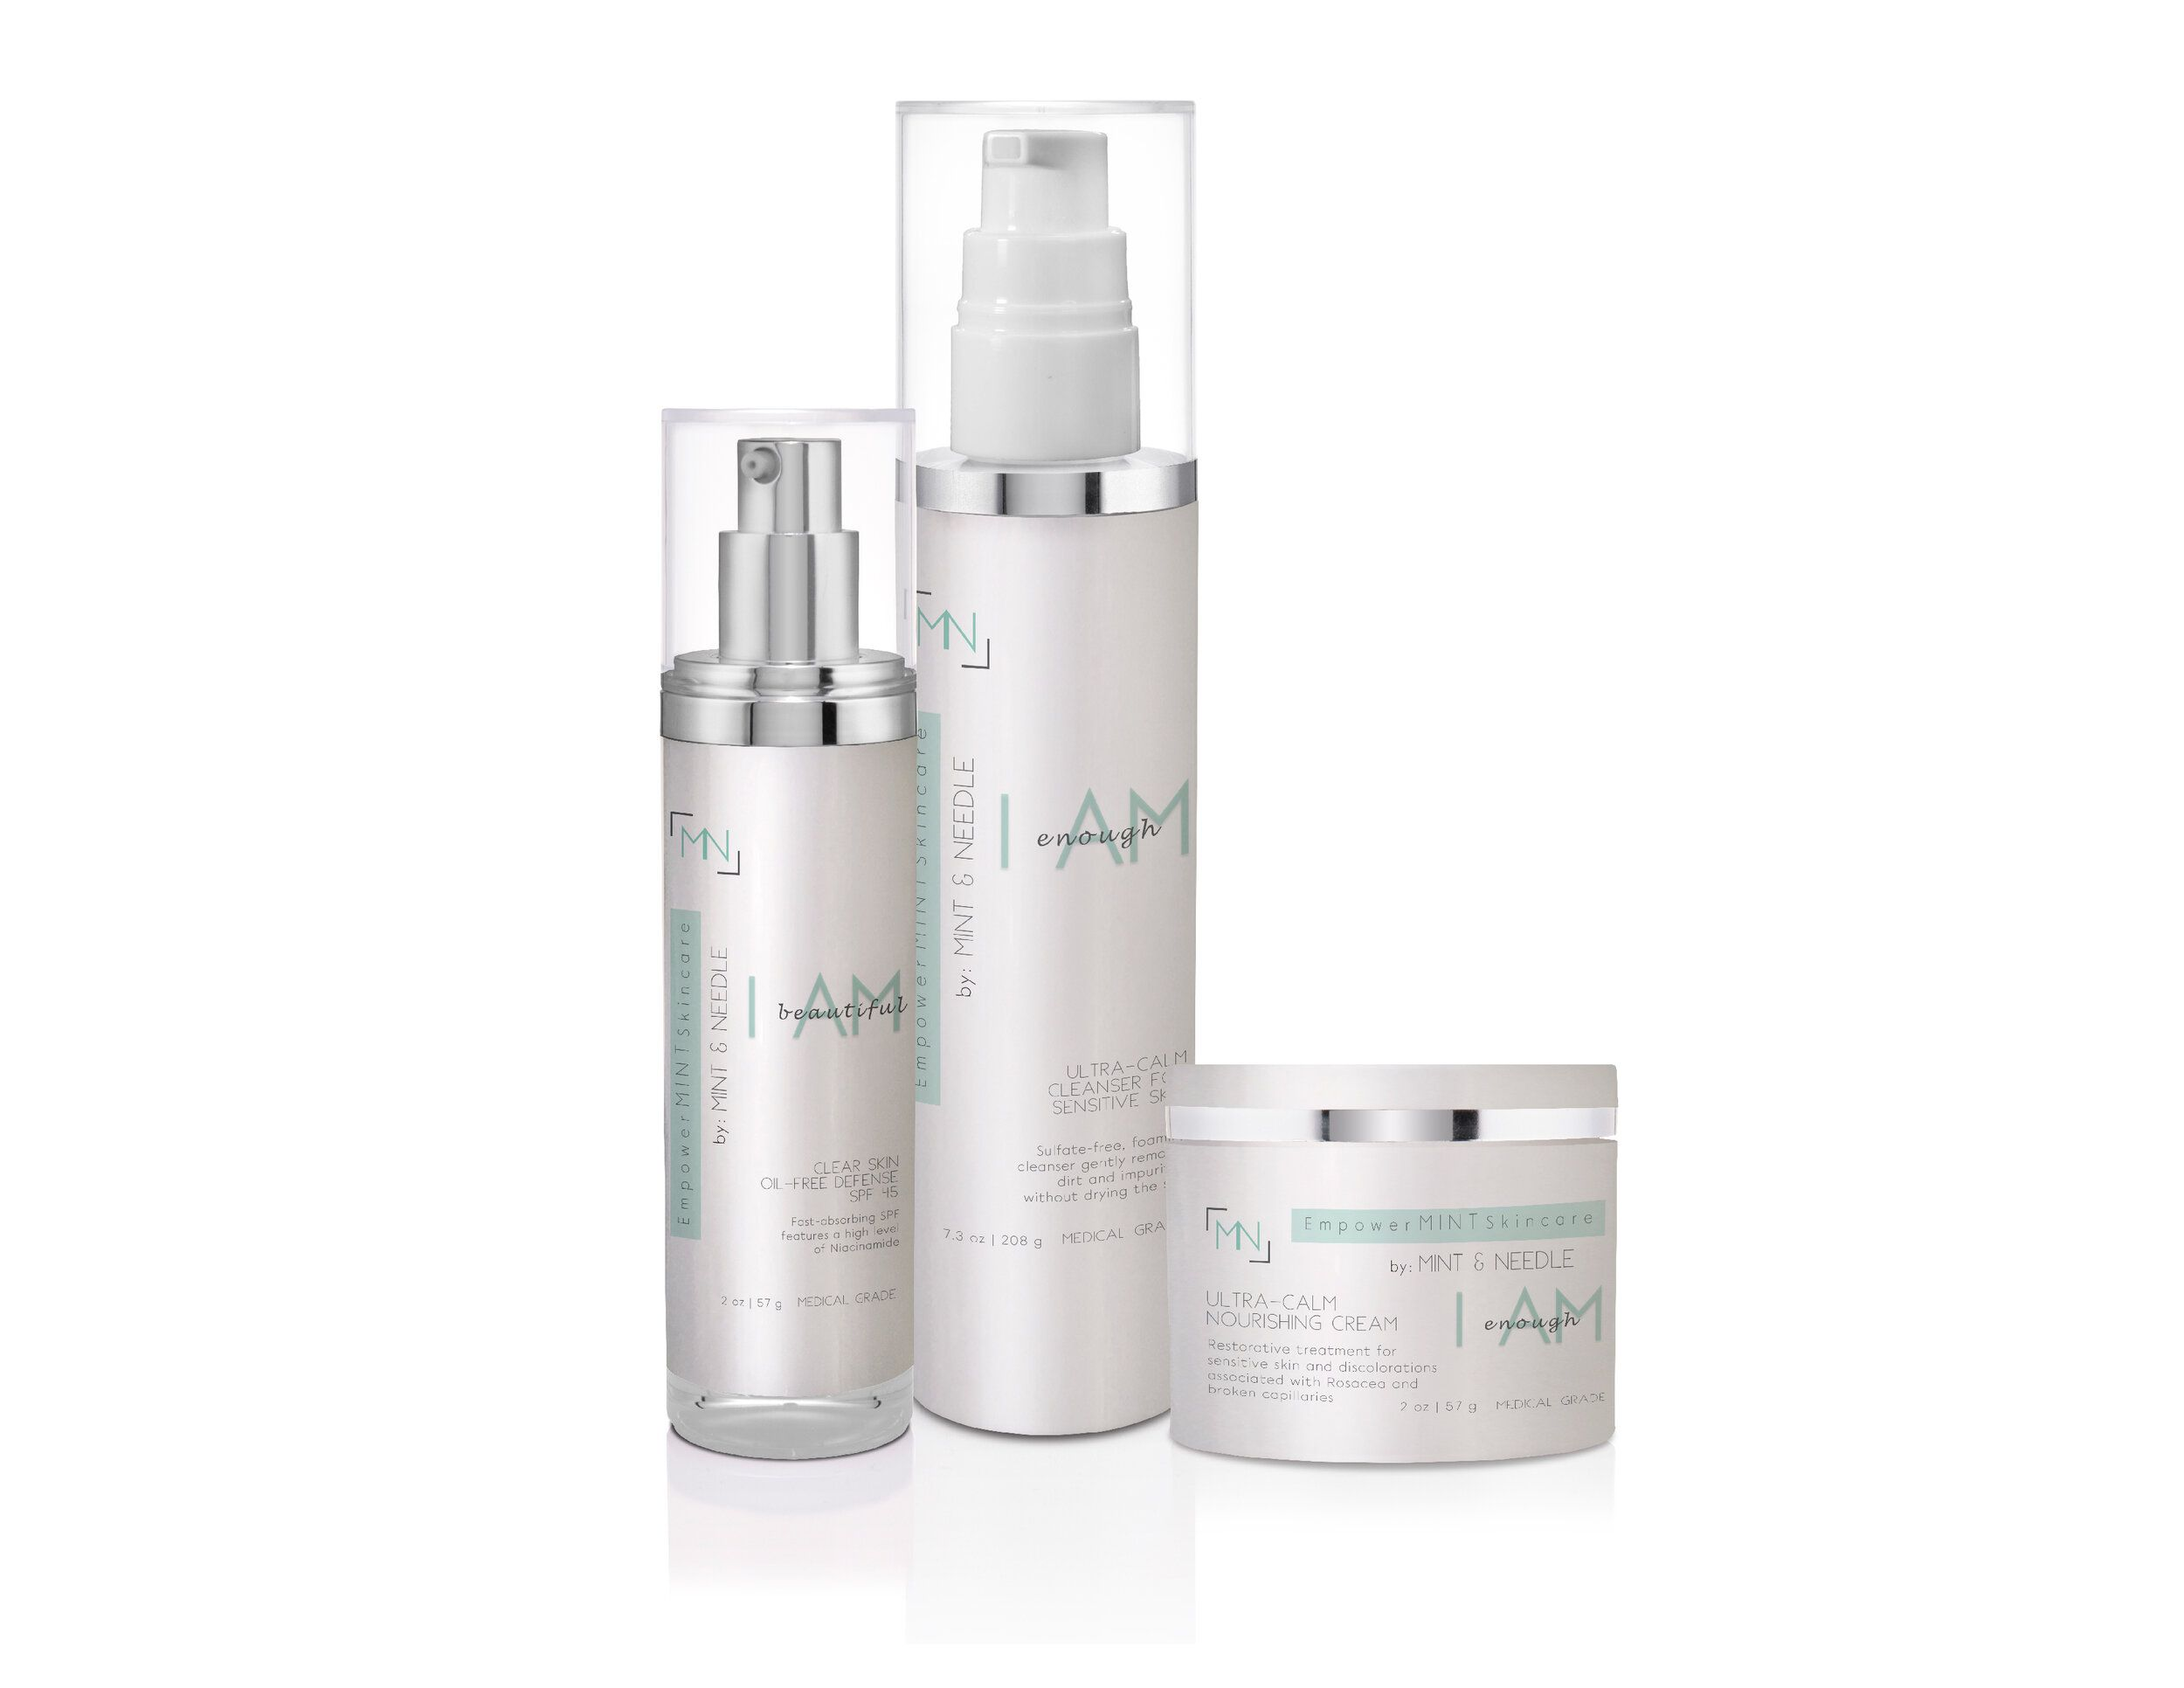 I Am Enough Ultra Calm Skincare Kit Part Of The Empowermint By Mint Needle Line T Skin Care Kit Organic Anti Aging Skin Care Cleanser For Sensitive Skin